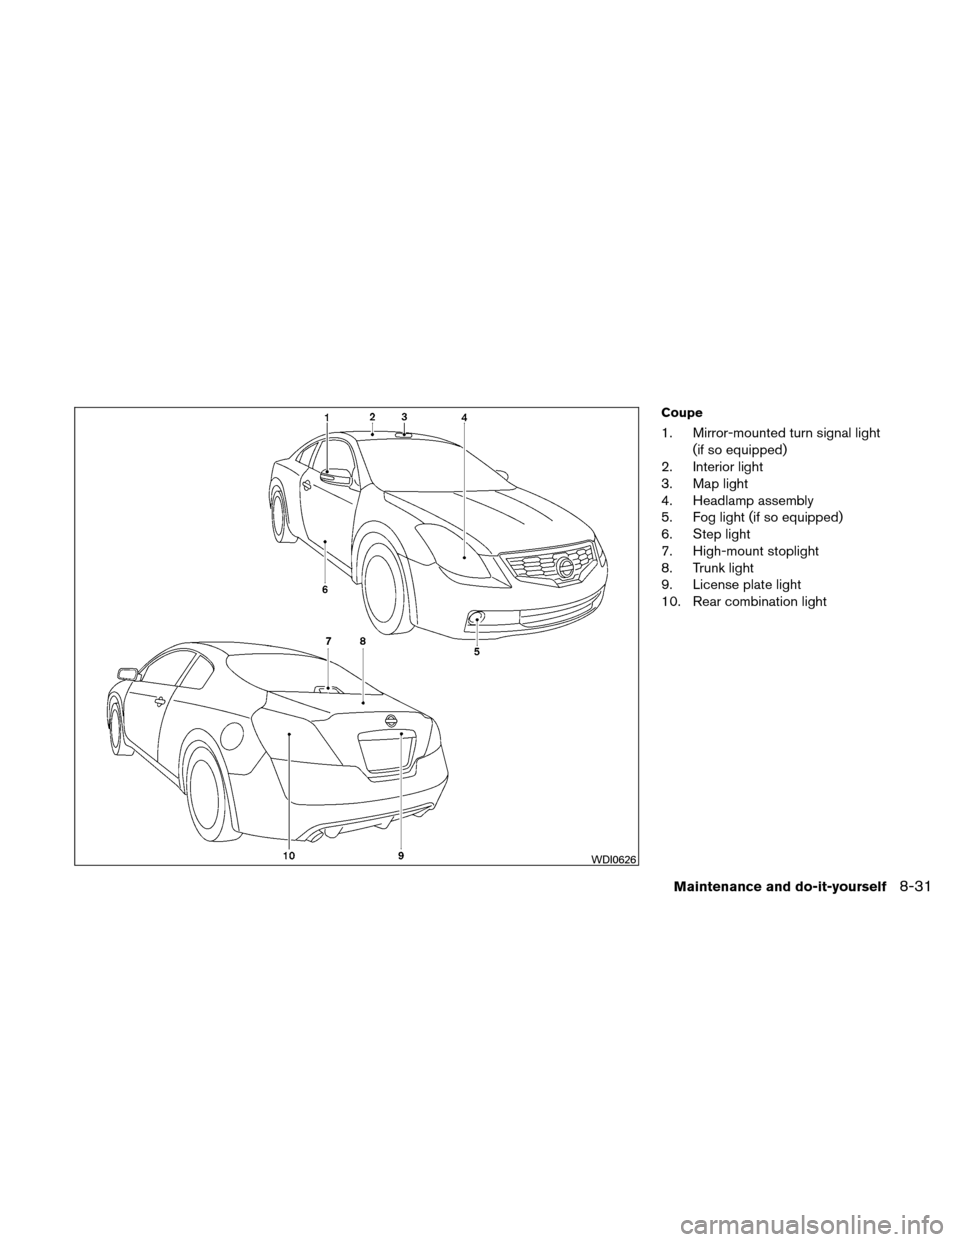 NISSAN ALTIMA COUPE 2011 D32 / 4.G Owners Manual, Page 390